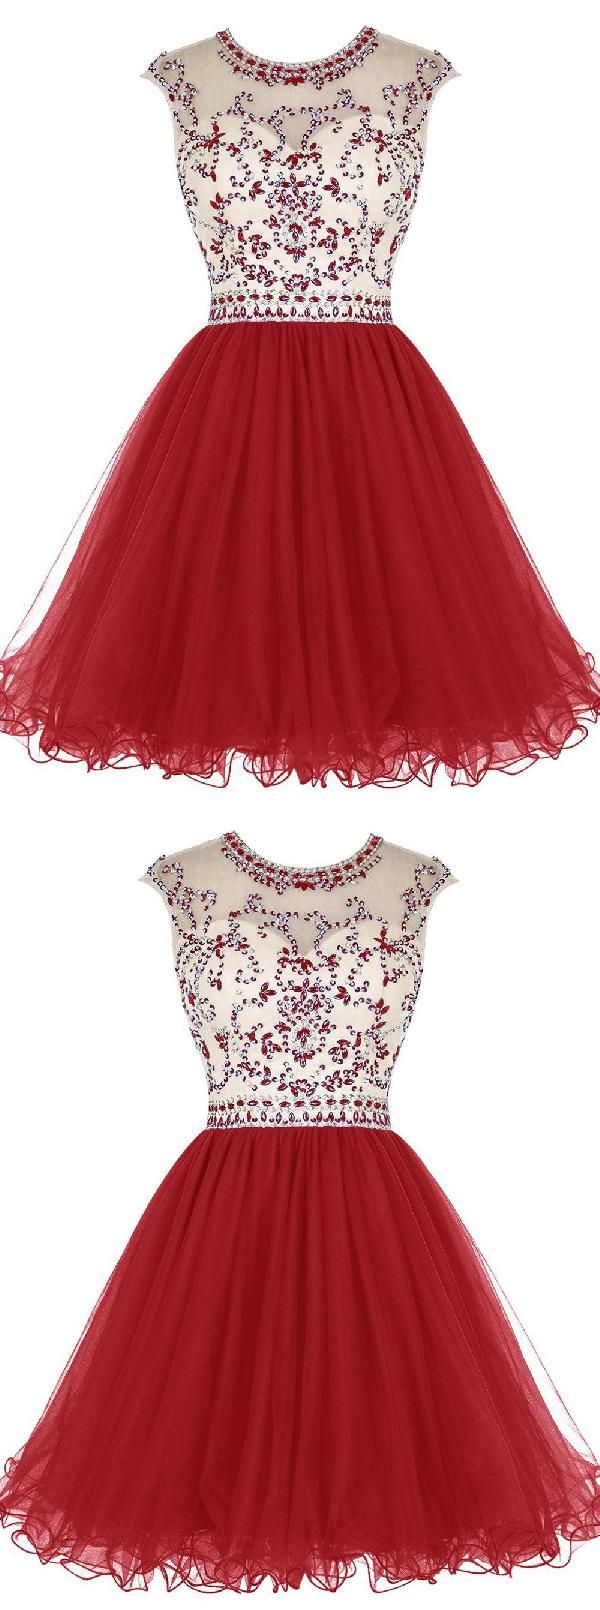 Red Homecoming Dress Homecoming Dress A Line Open Back Homecoming Dress Red Homecoming Dress Open Back Red Homecoming Dresses Homecoming Dresses Dresses